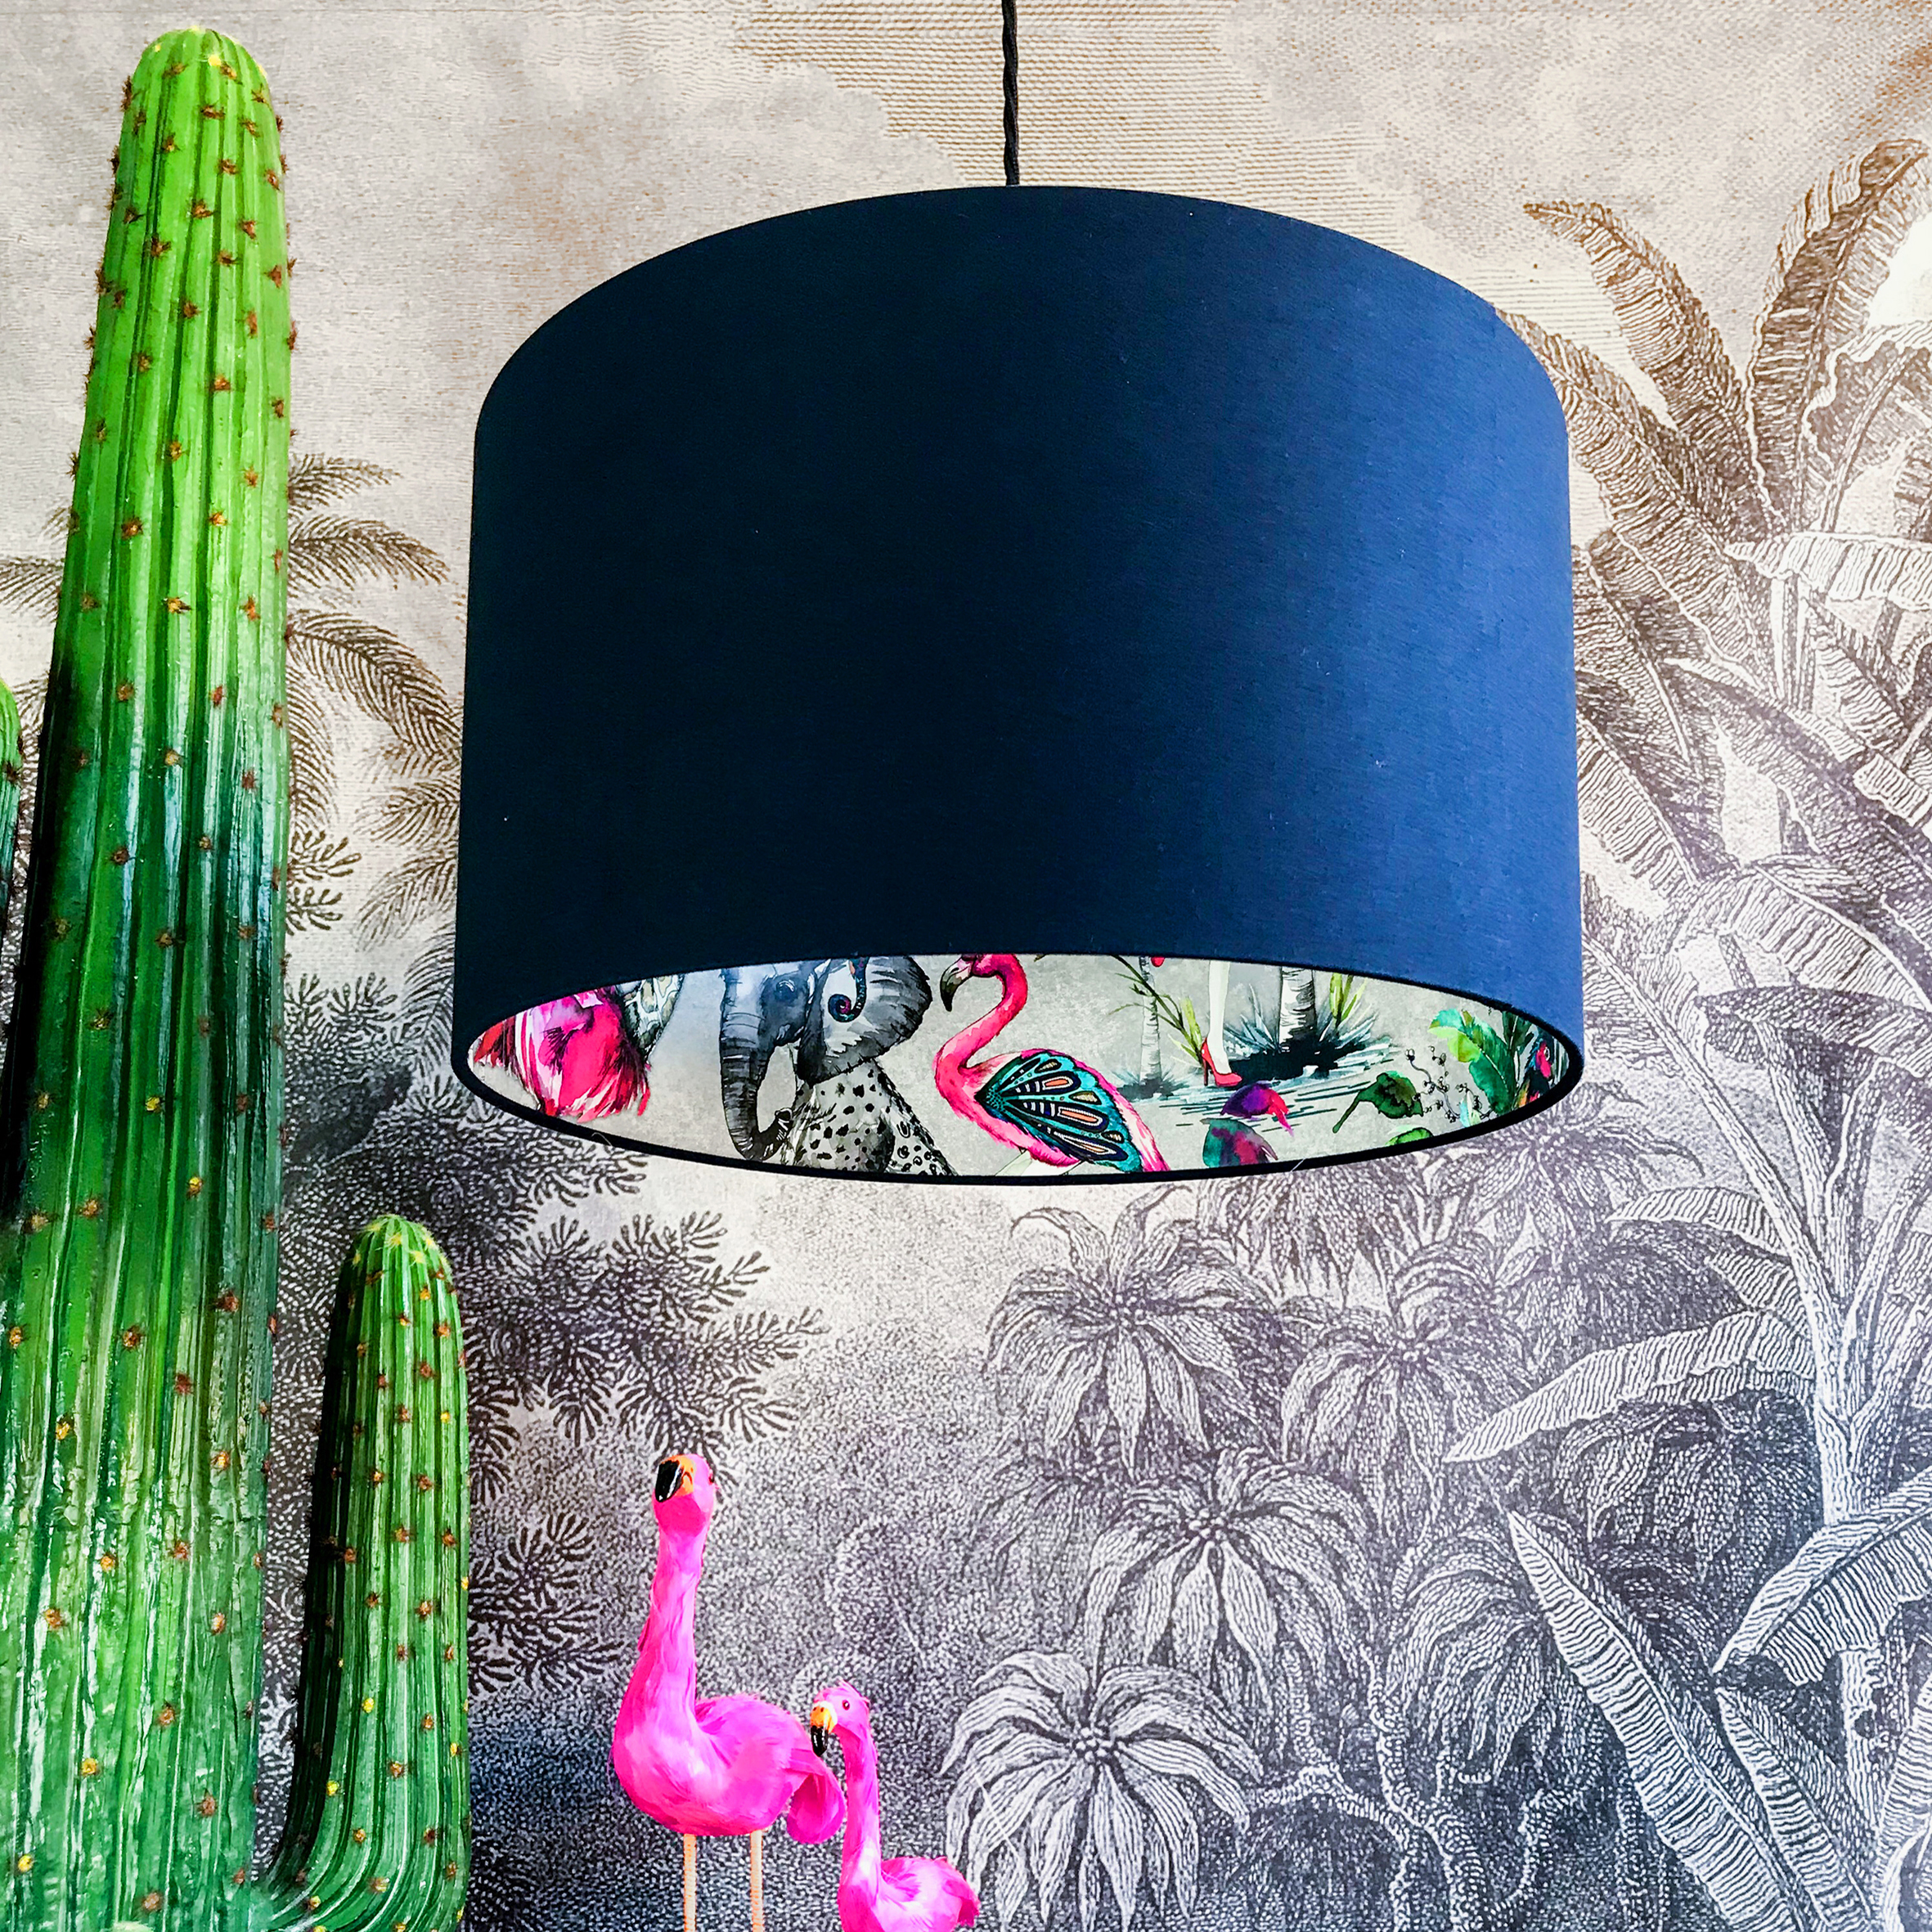 Silver ChiMiracle Wallpaper Silhouette Lampshade in Deep Space Navy